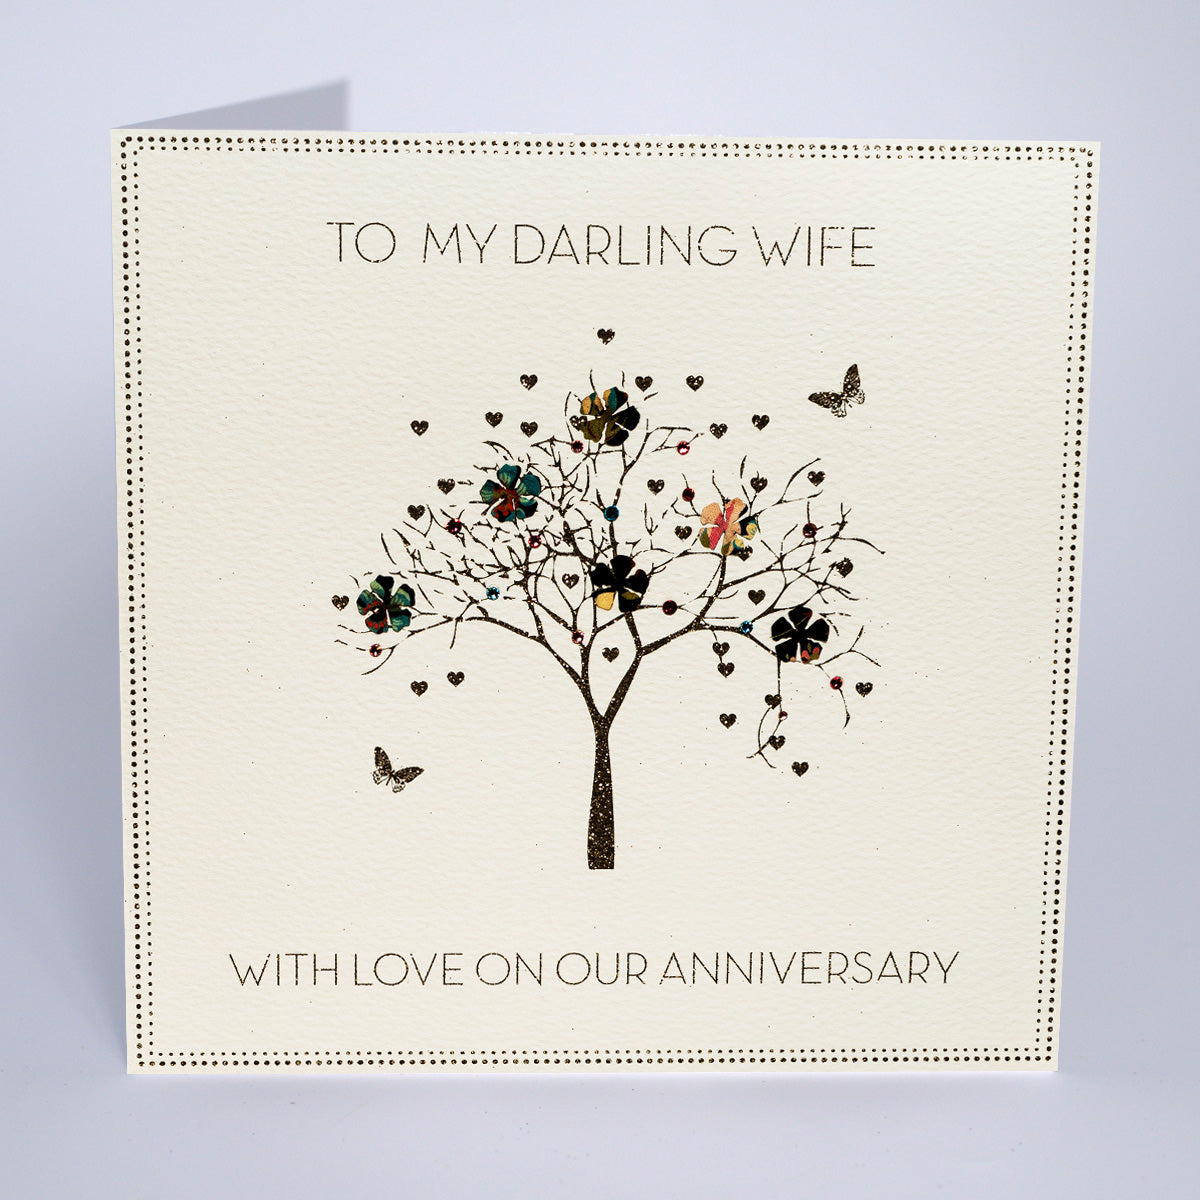 To My Darling Wife - On Our Anniversary